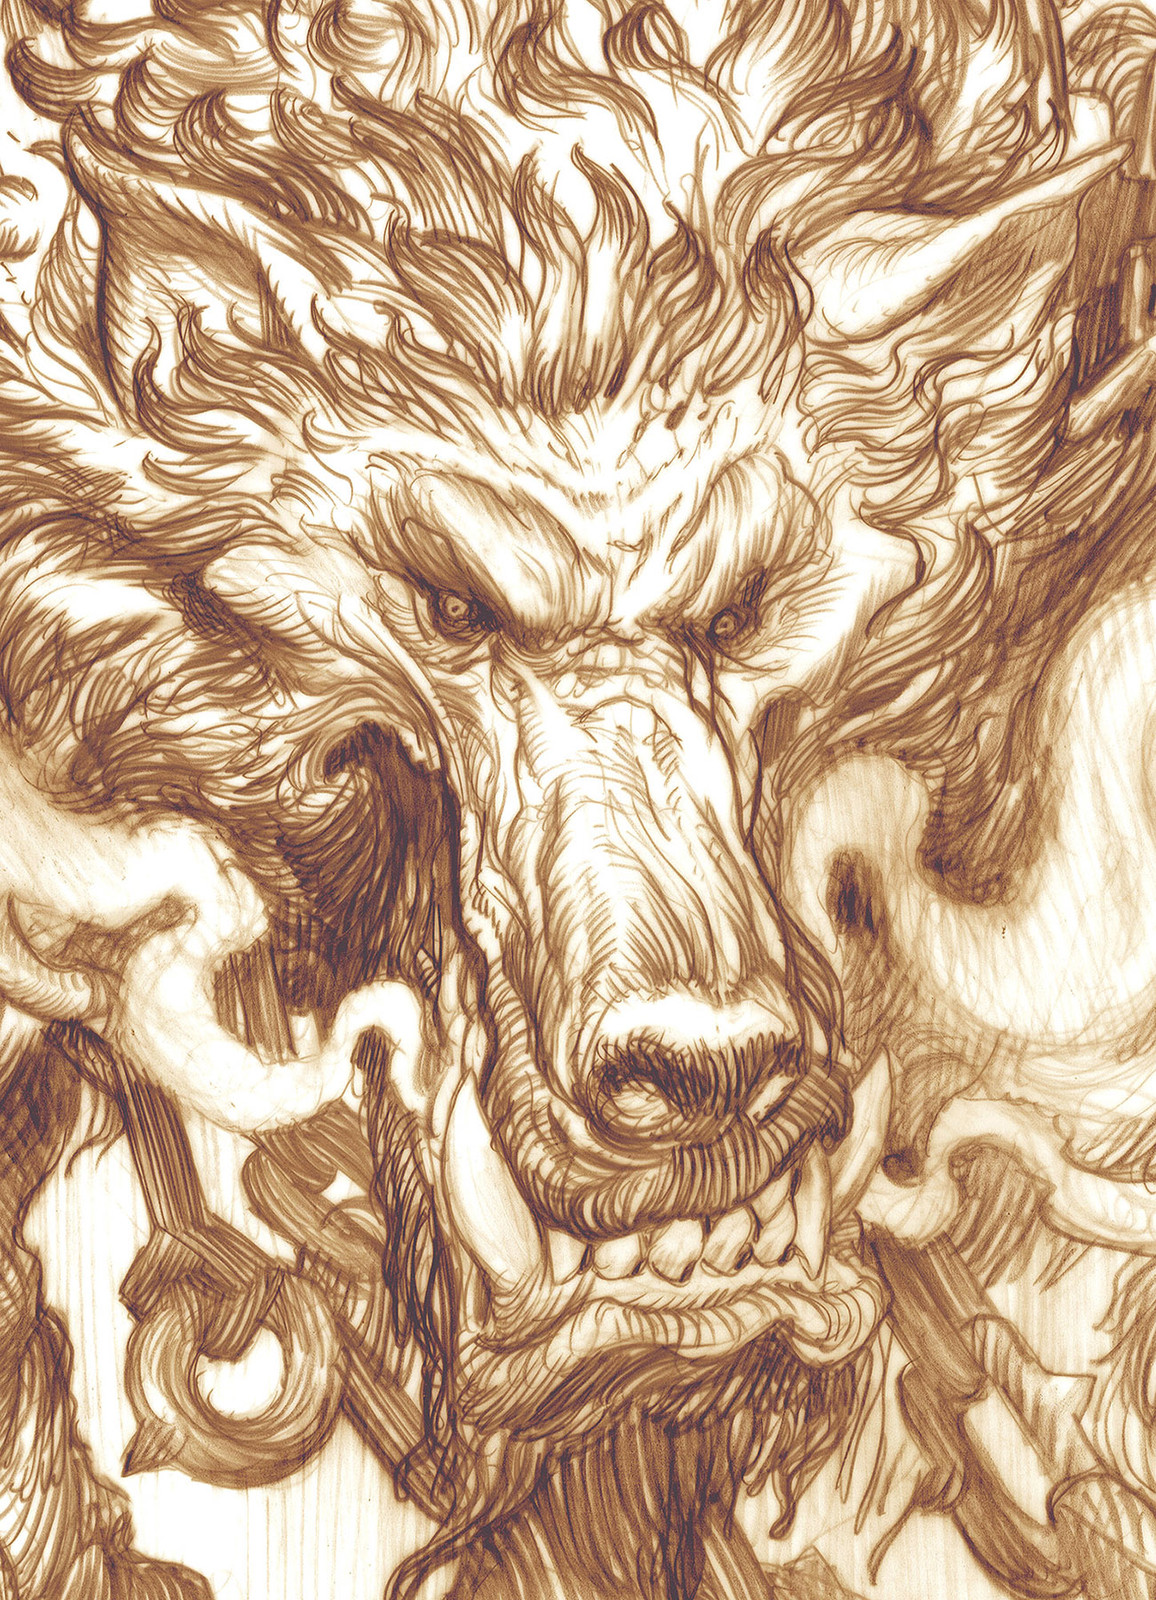 Character Design Drawing on vellum (detail)